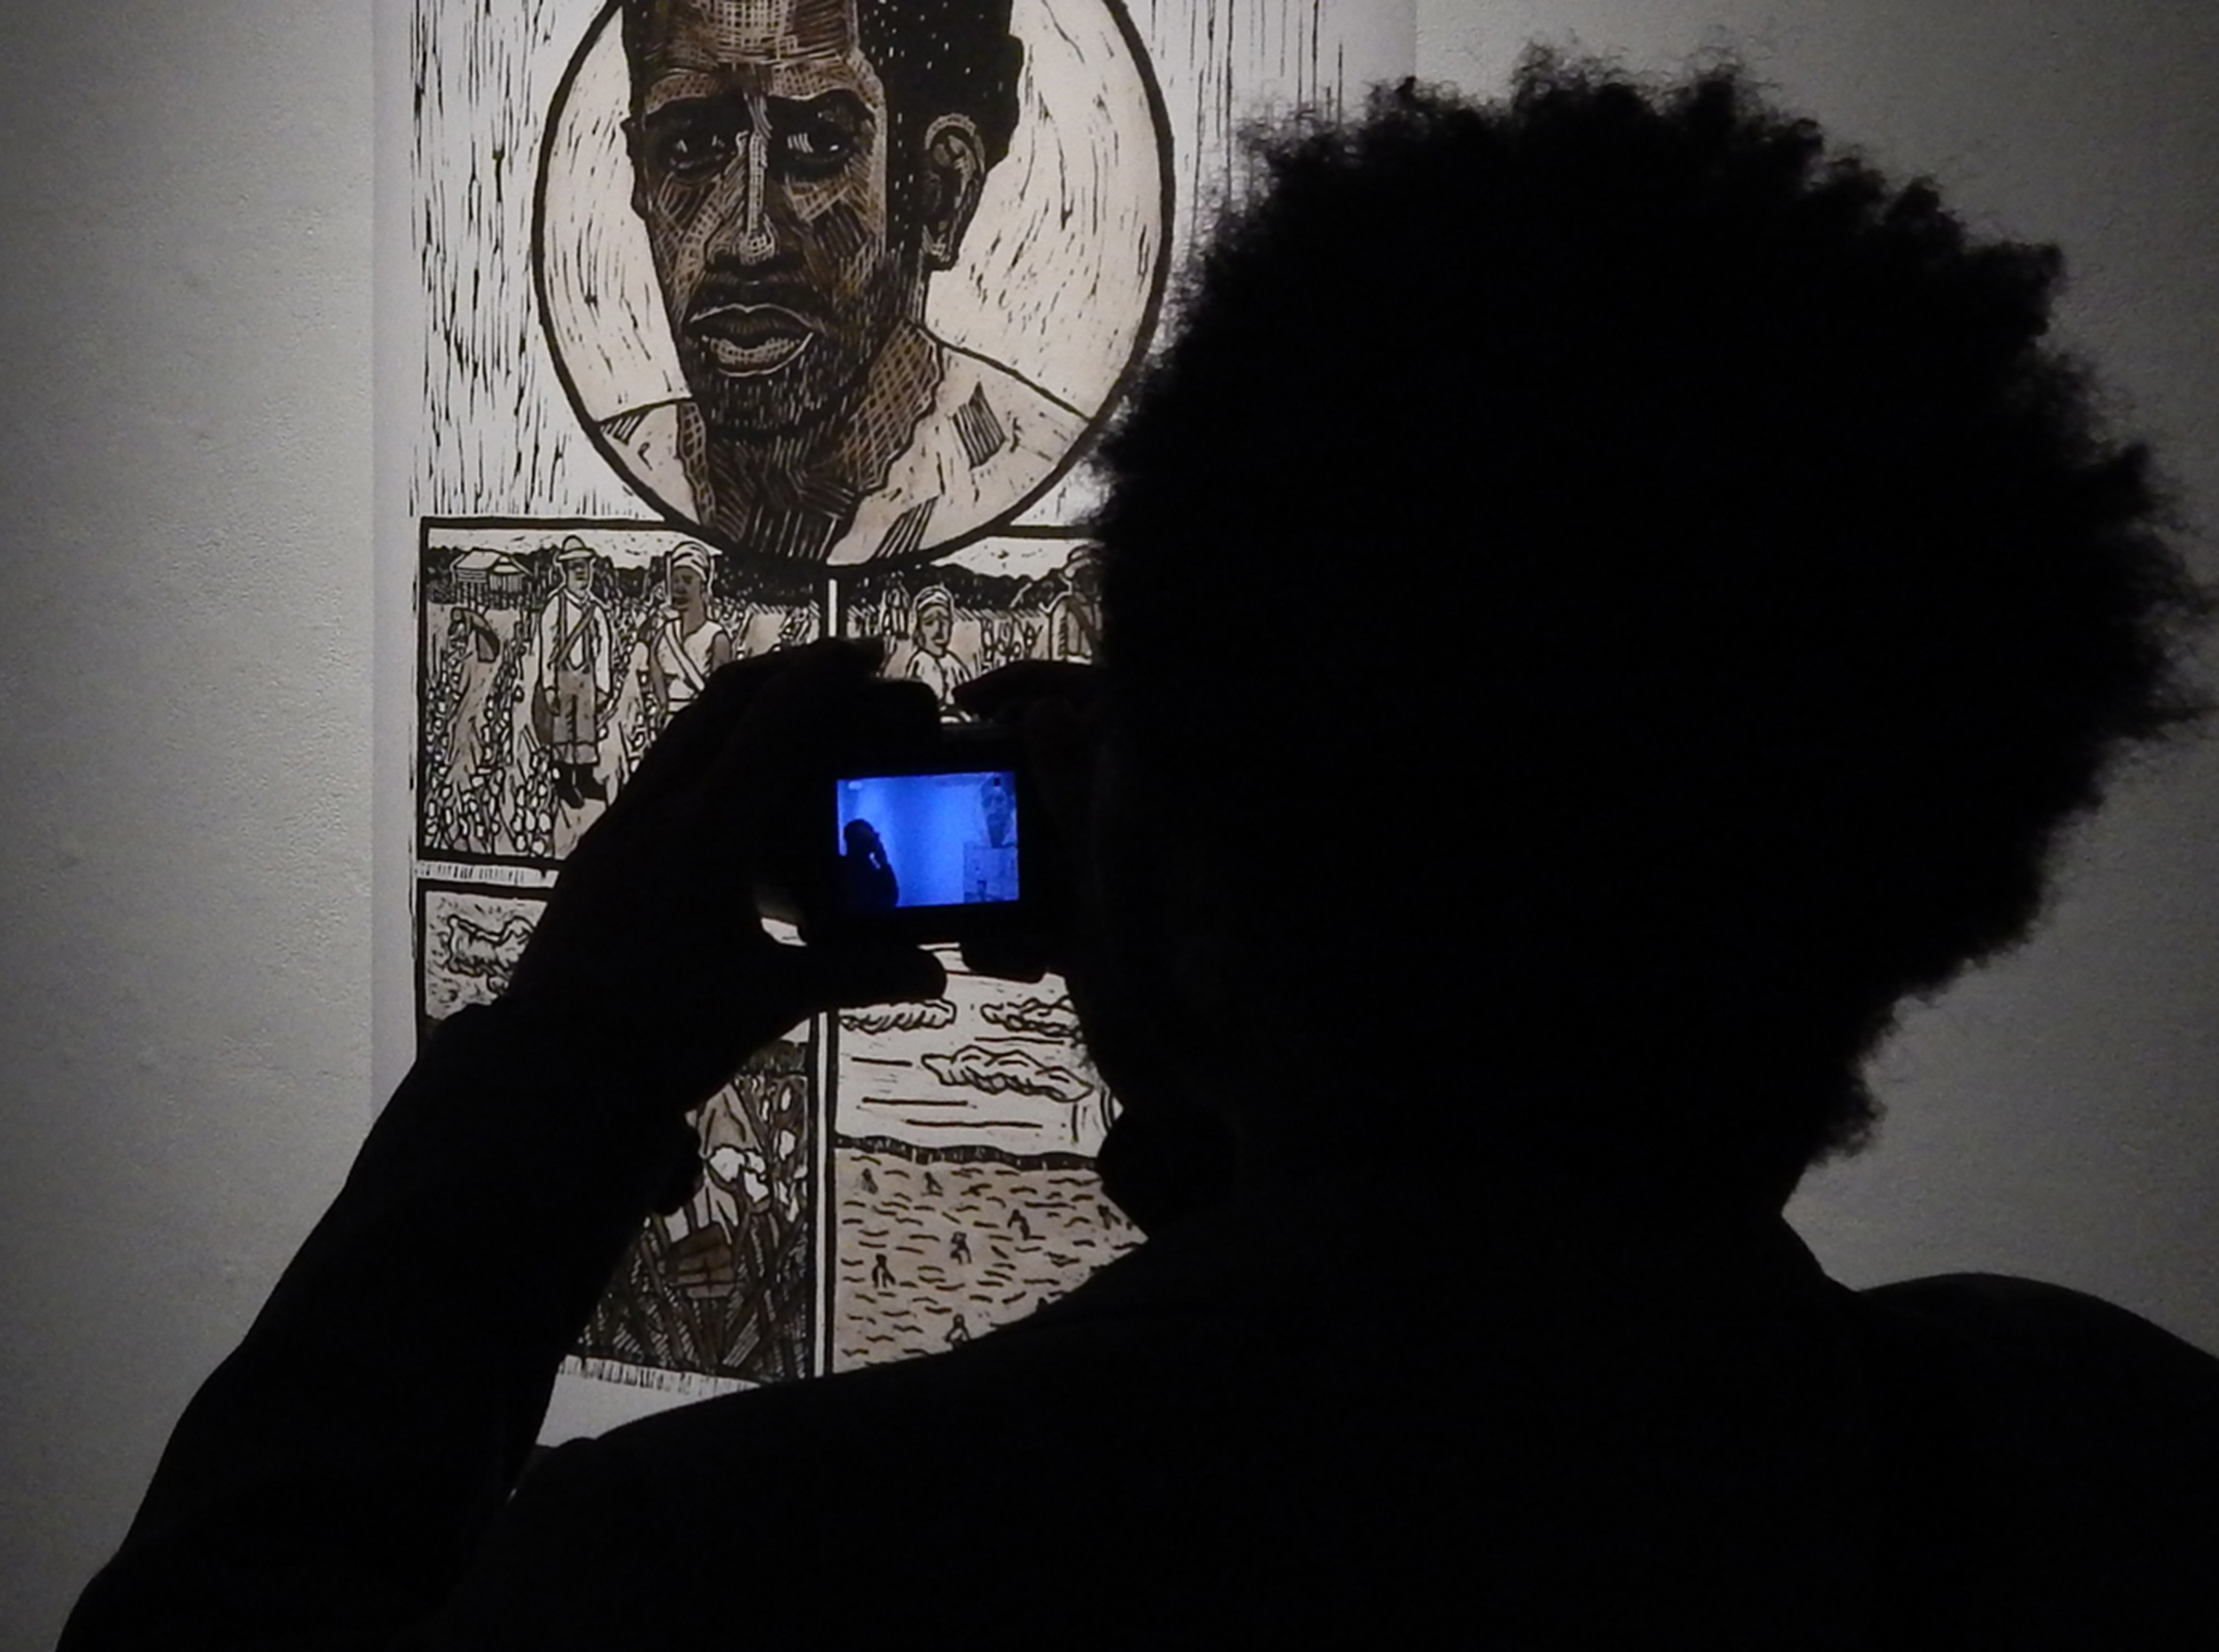 """Craig Ross, """"Steal Away: The Visions of Nat Turner."""" pages on display during the """"Didactic Art Show"""" (2014)"""